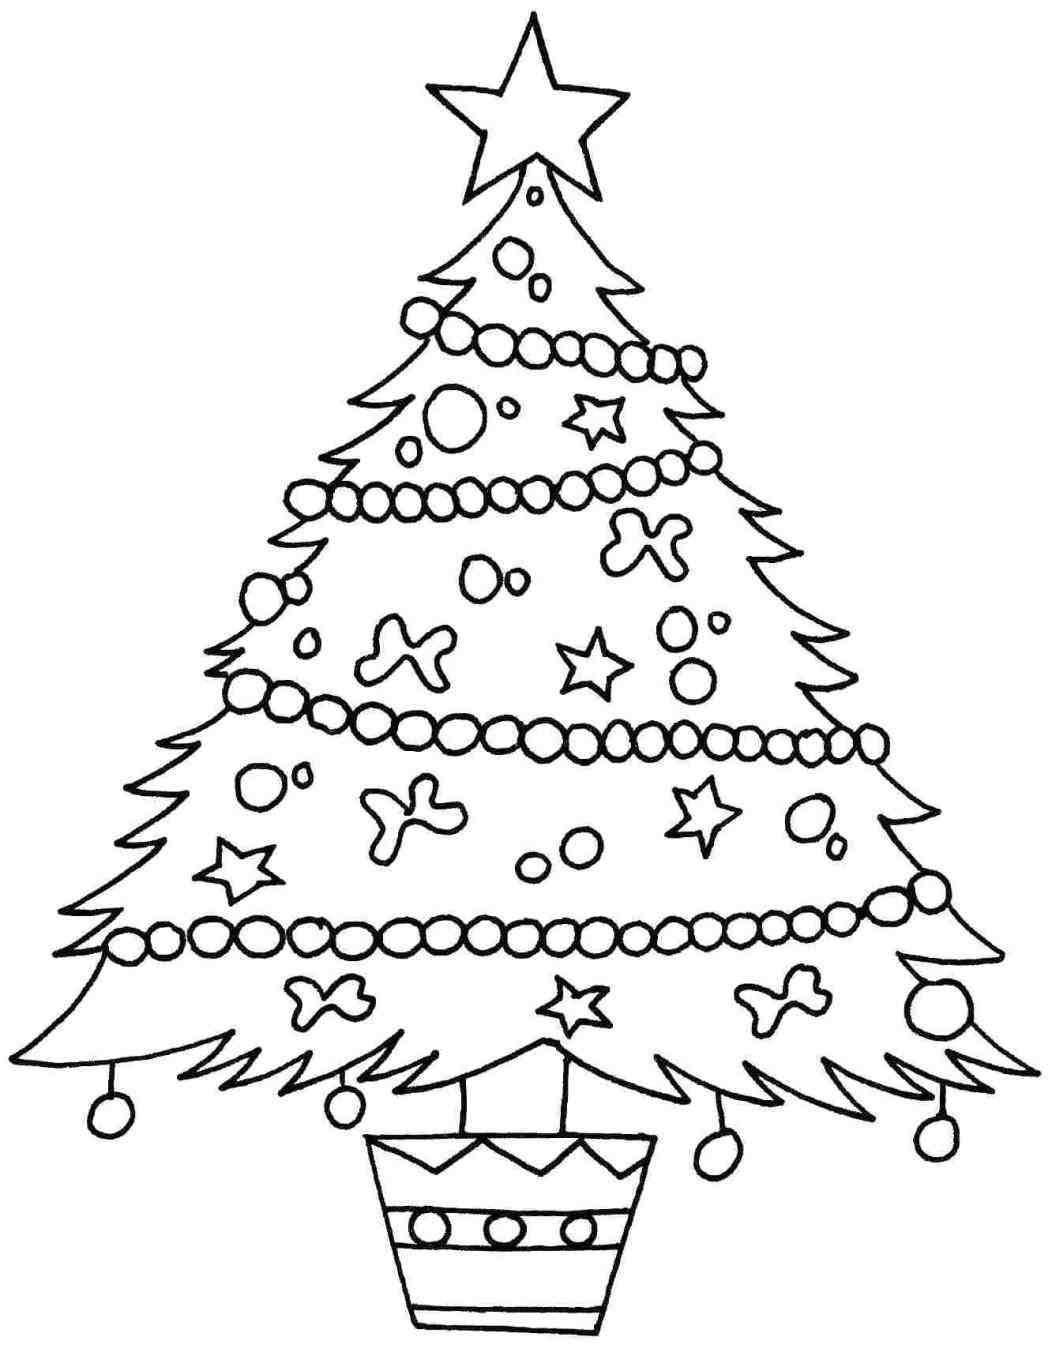 christmas tree angel template (With images) Printable